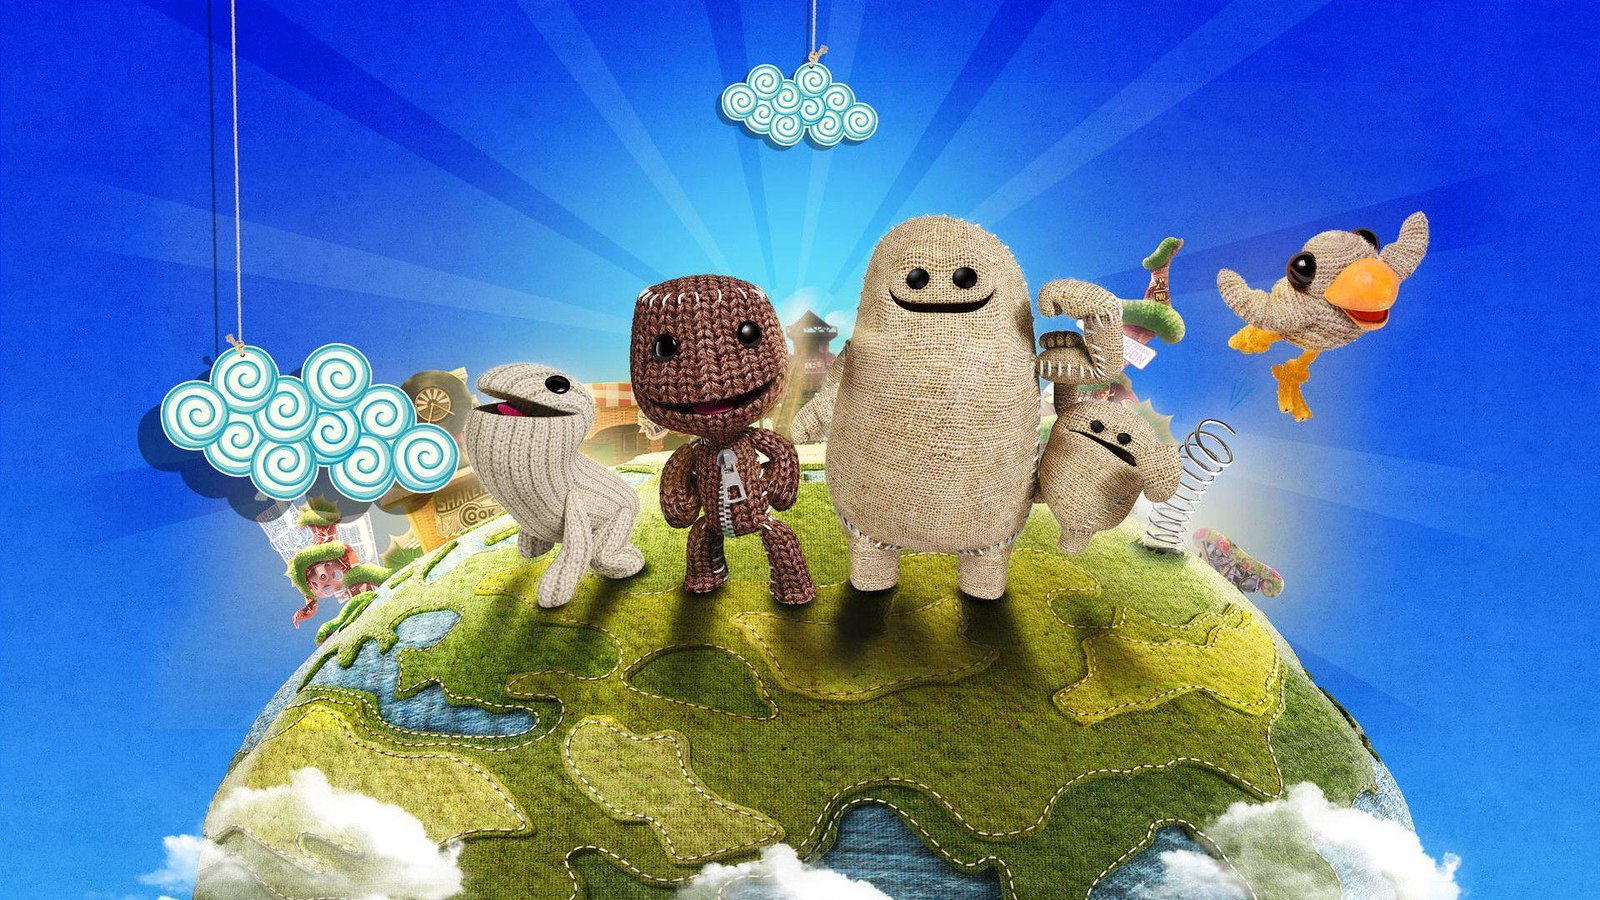 Video Conference Backgrounds - LittleBigPlanet